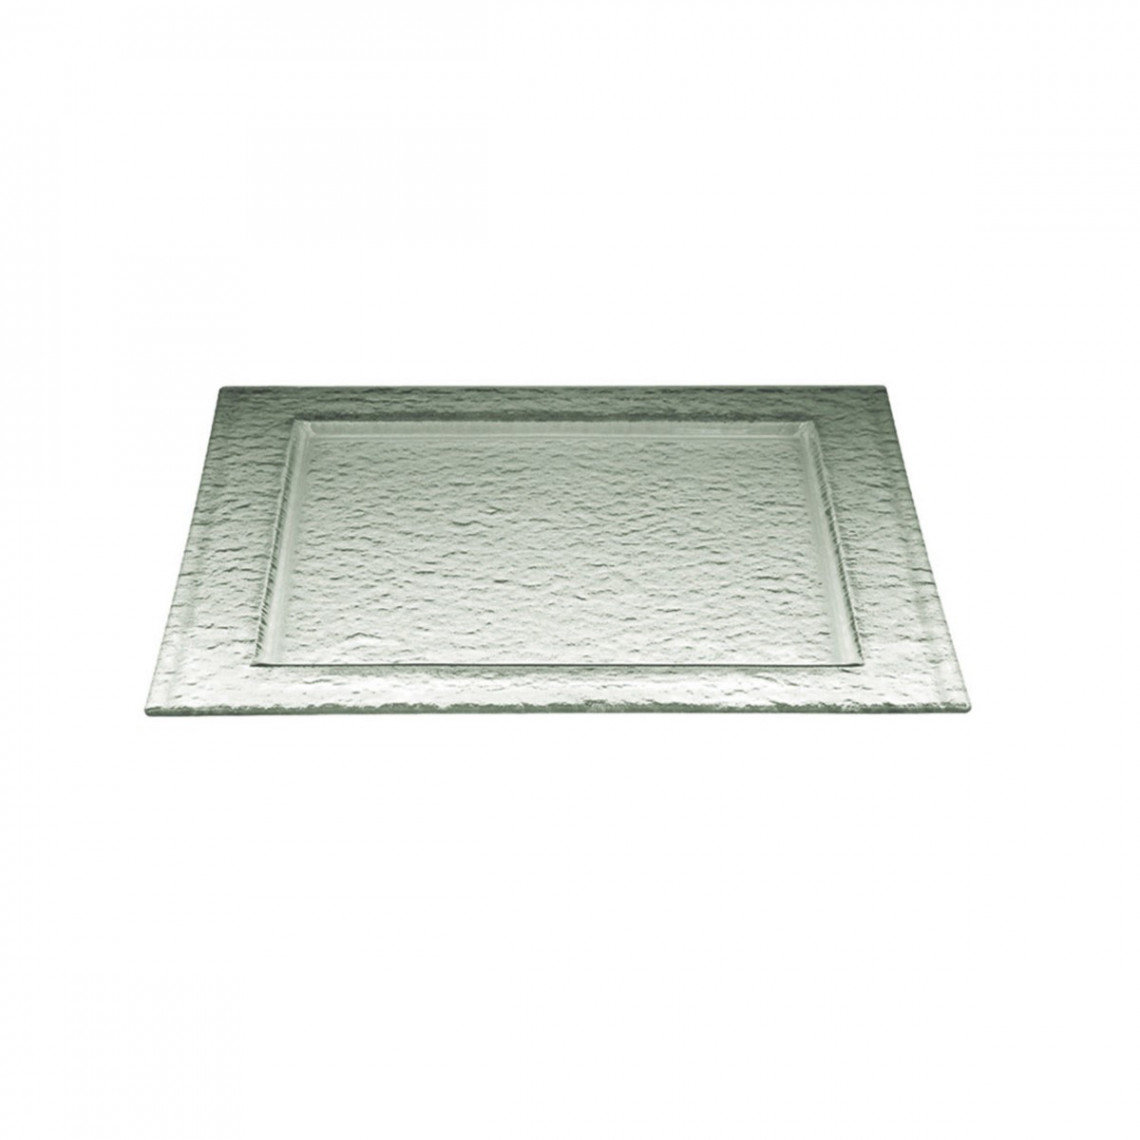 Plat de dressage Baltique (35 x 35 cm)